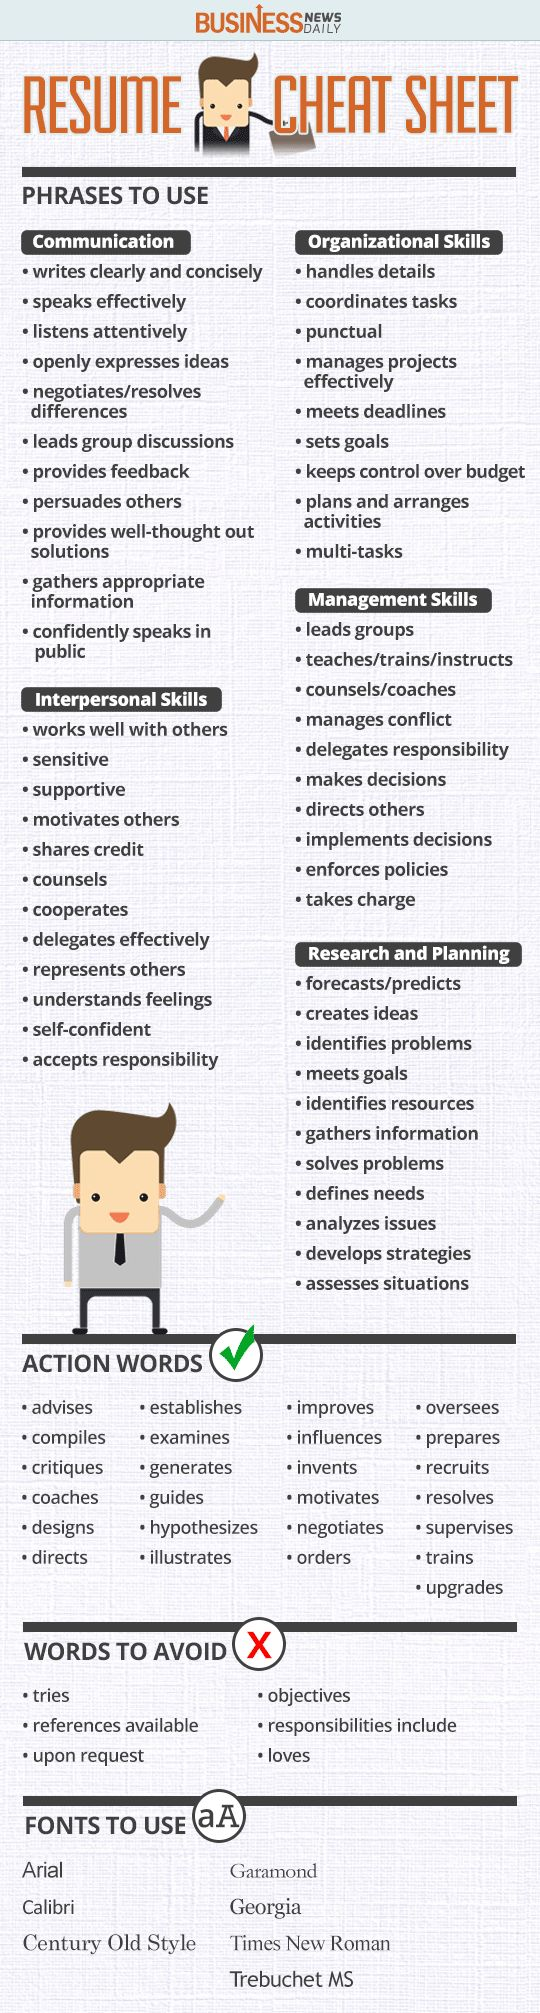 Opposenewapstandardsus  Prepossessing  Ideas About Resume On Pinterest  Cv Format Resume Cv And  With Likable Resume Cheat Sheet Infographic Andrews Almost Done With A Complete Unit On Employment Which With Captivating Home Health Aide Resume Sample Also Objective Sentence For Resume In Addition Create A Resume From Linkedin And Interior Design Resume Samples As Well As Personal Statement Resume Examples Additionally No Job Experience Resume Example From Pinterestcom With Opposenewapstandardsus  Likable  Ideas About Resume On Pinterest  Cv Format Resume Cv And  With Captivating Resume Cheat Sheet Infographic Andrews Almost Done With A Complete Unit On Employment Which And Prepossessing Home Health Aide Resume Sample Also Objective Sentence For Resume In Addition Create A Resume From Linkedin From Pinterestcom